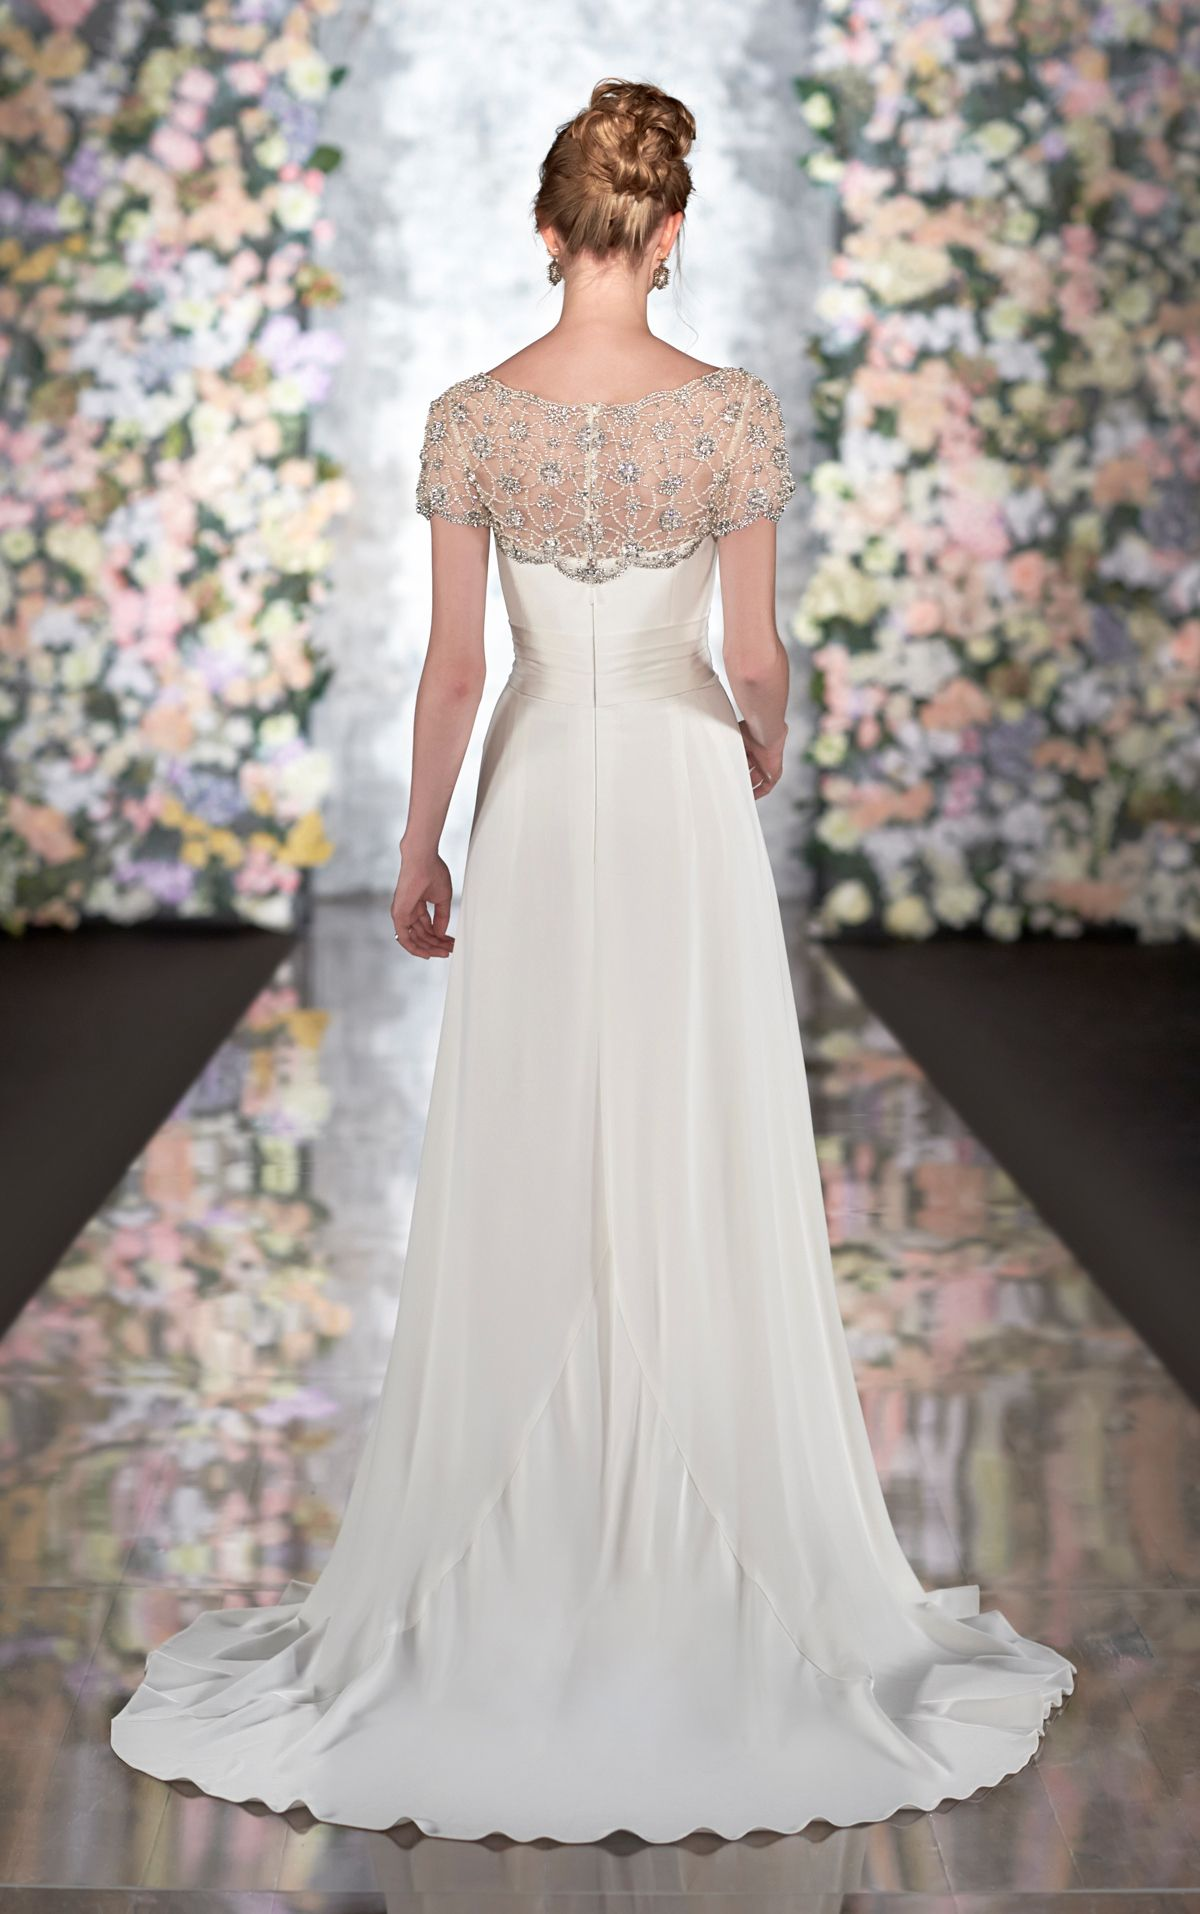 Martina liana wedding gowns gowns wedding dress and bridal